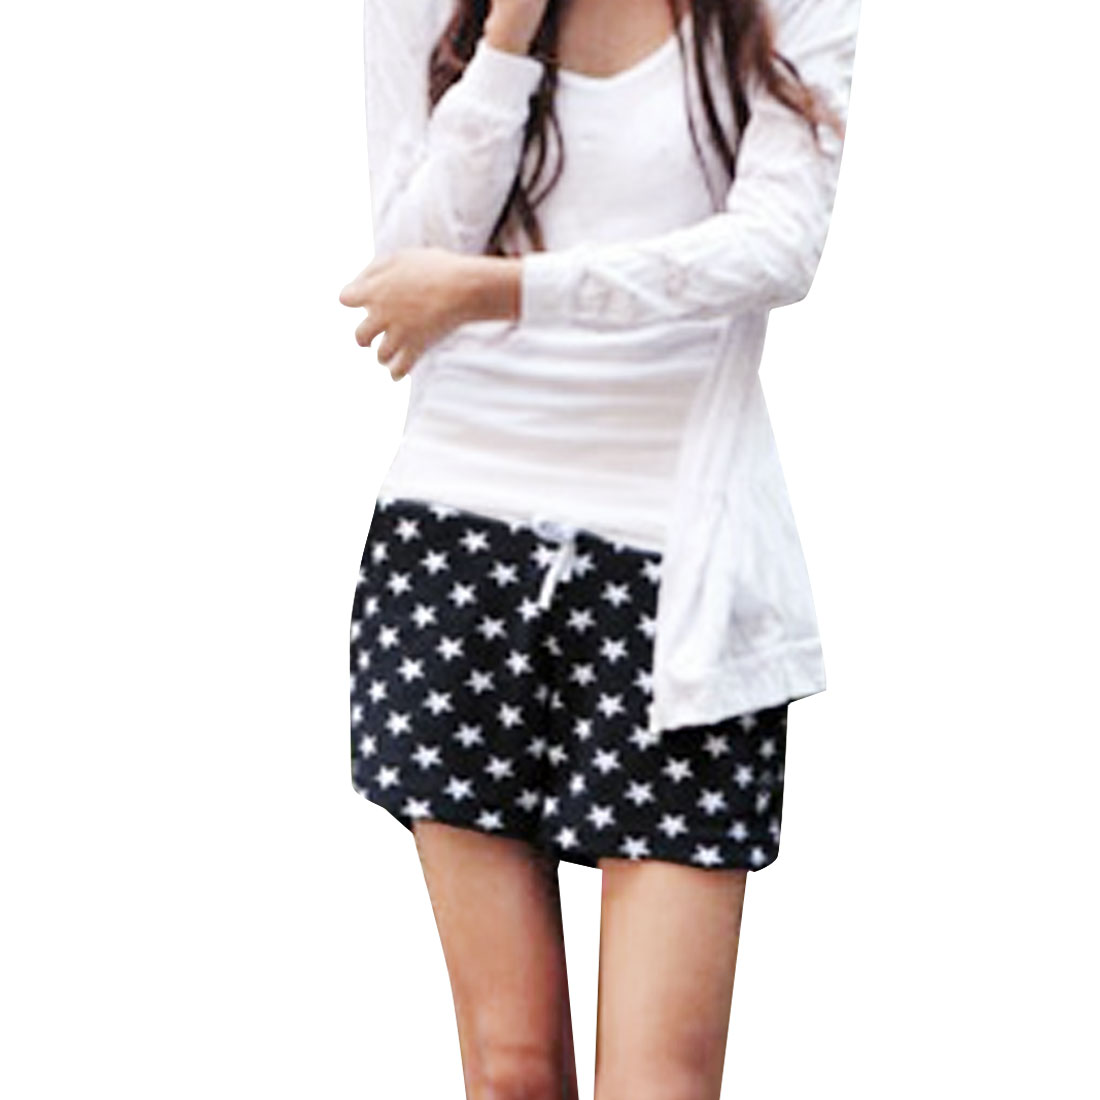 Women Elastic Waist Design Drawstring Stars Pattern Shorts M Navy Blue